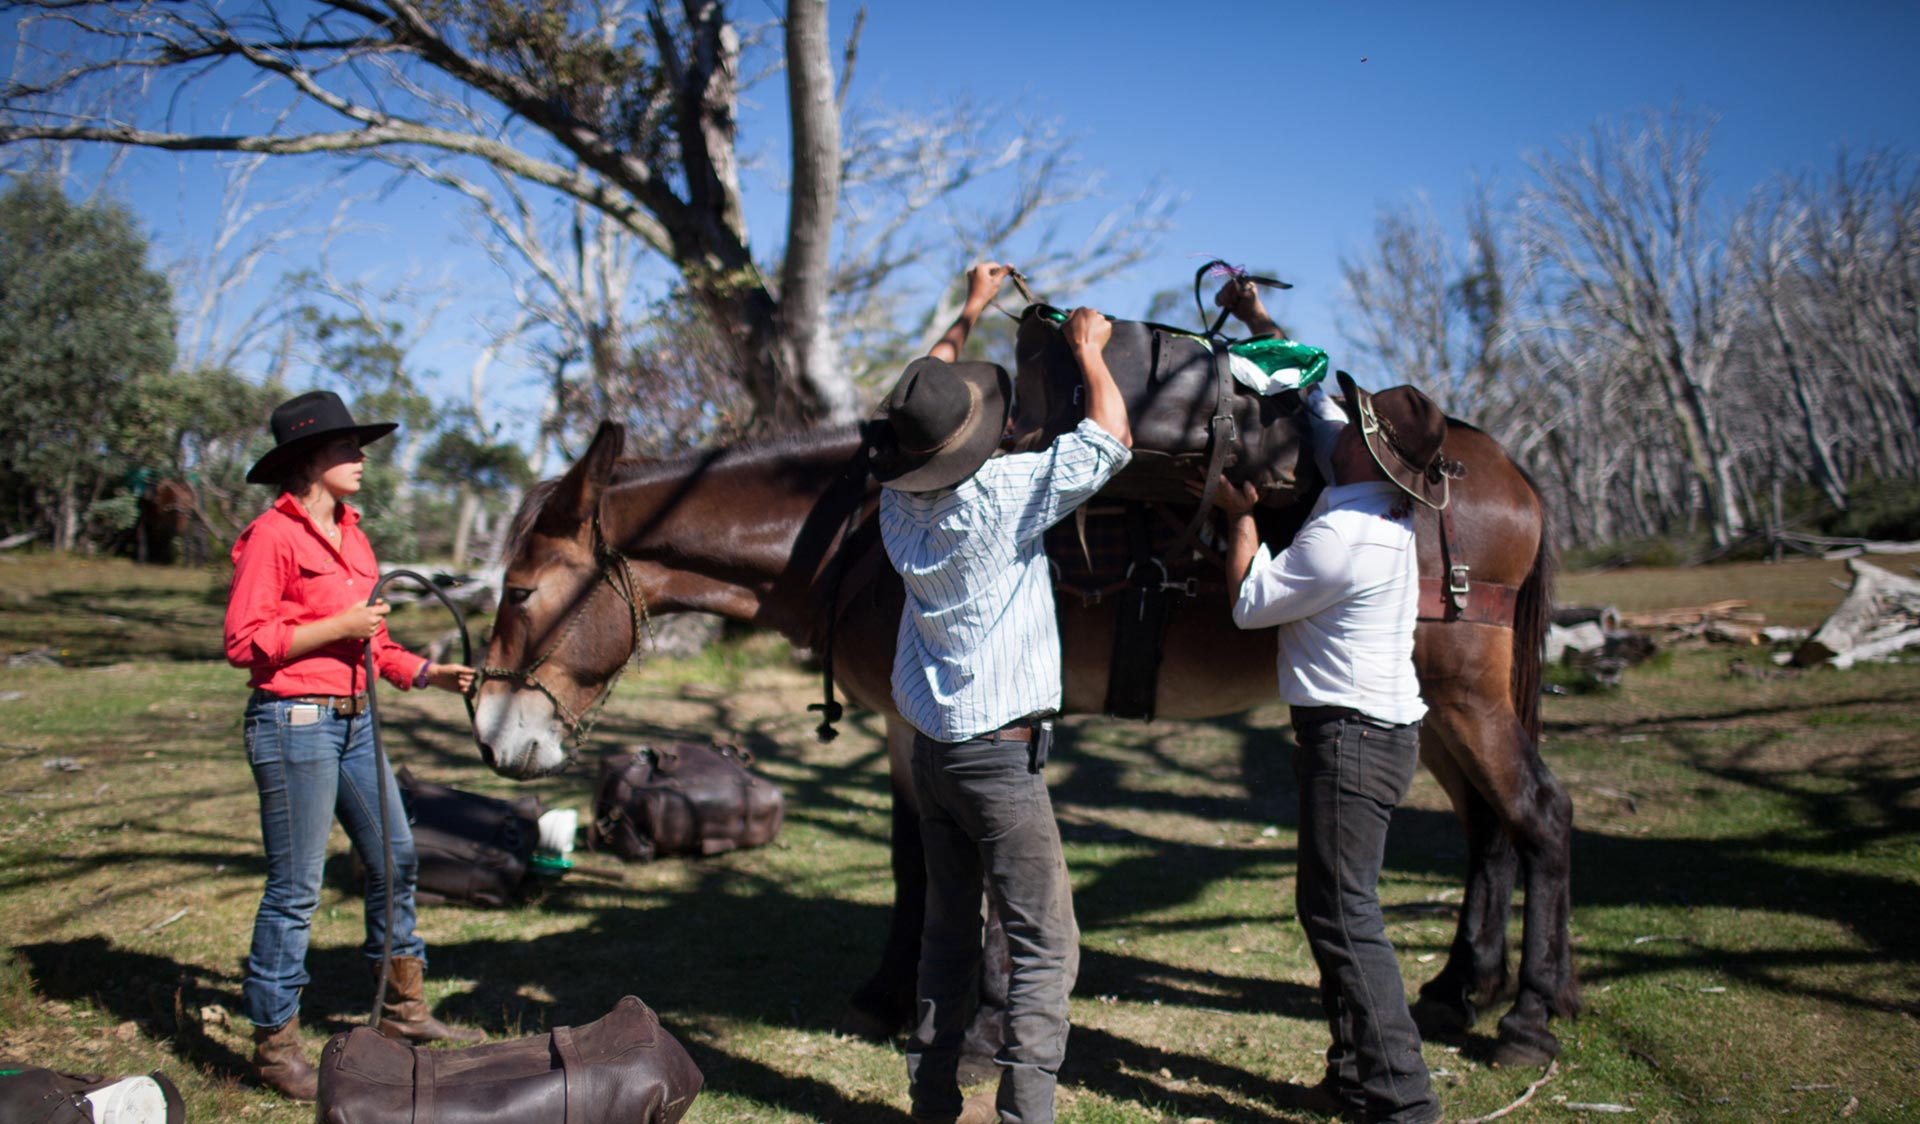 Three horseriders saddle-up a pack horse before the day's riding.